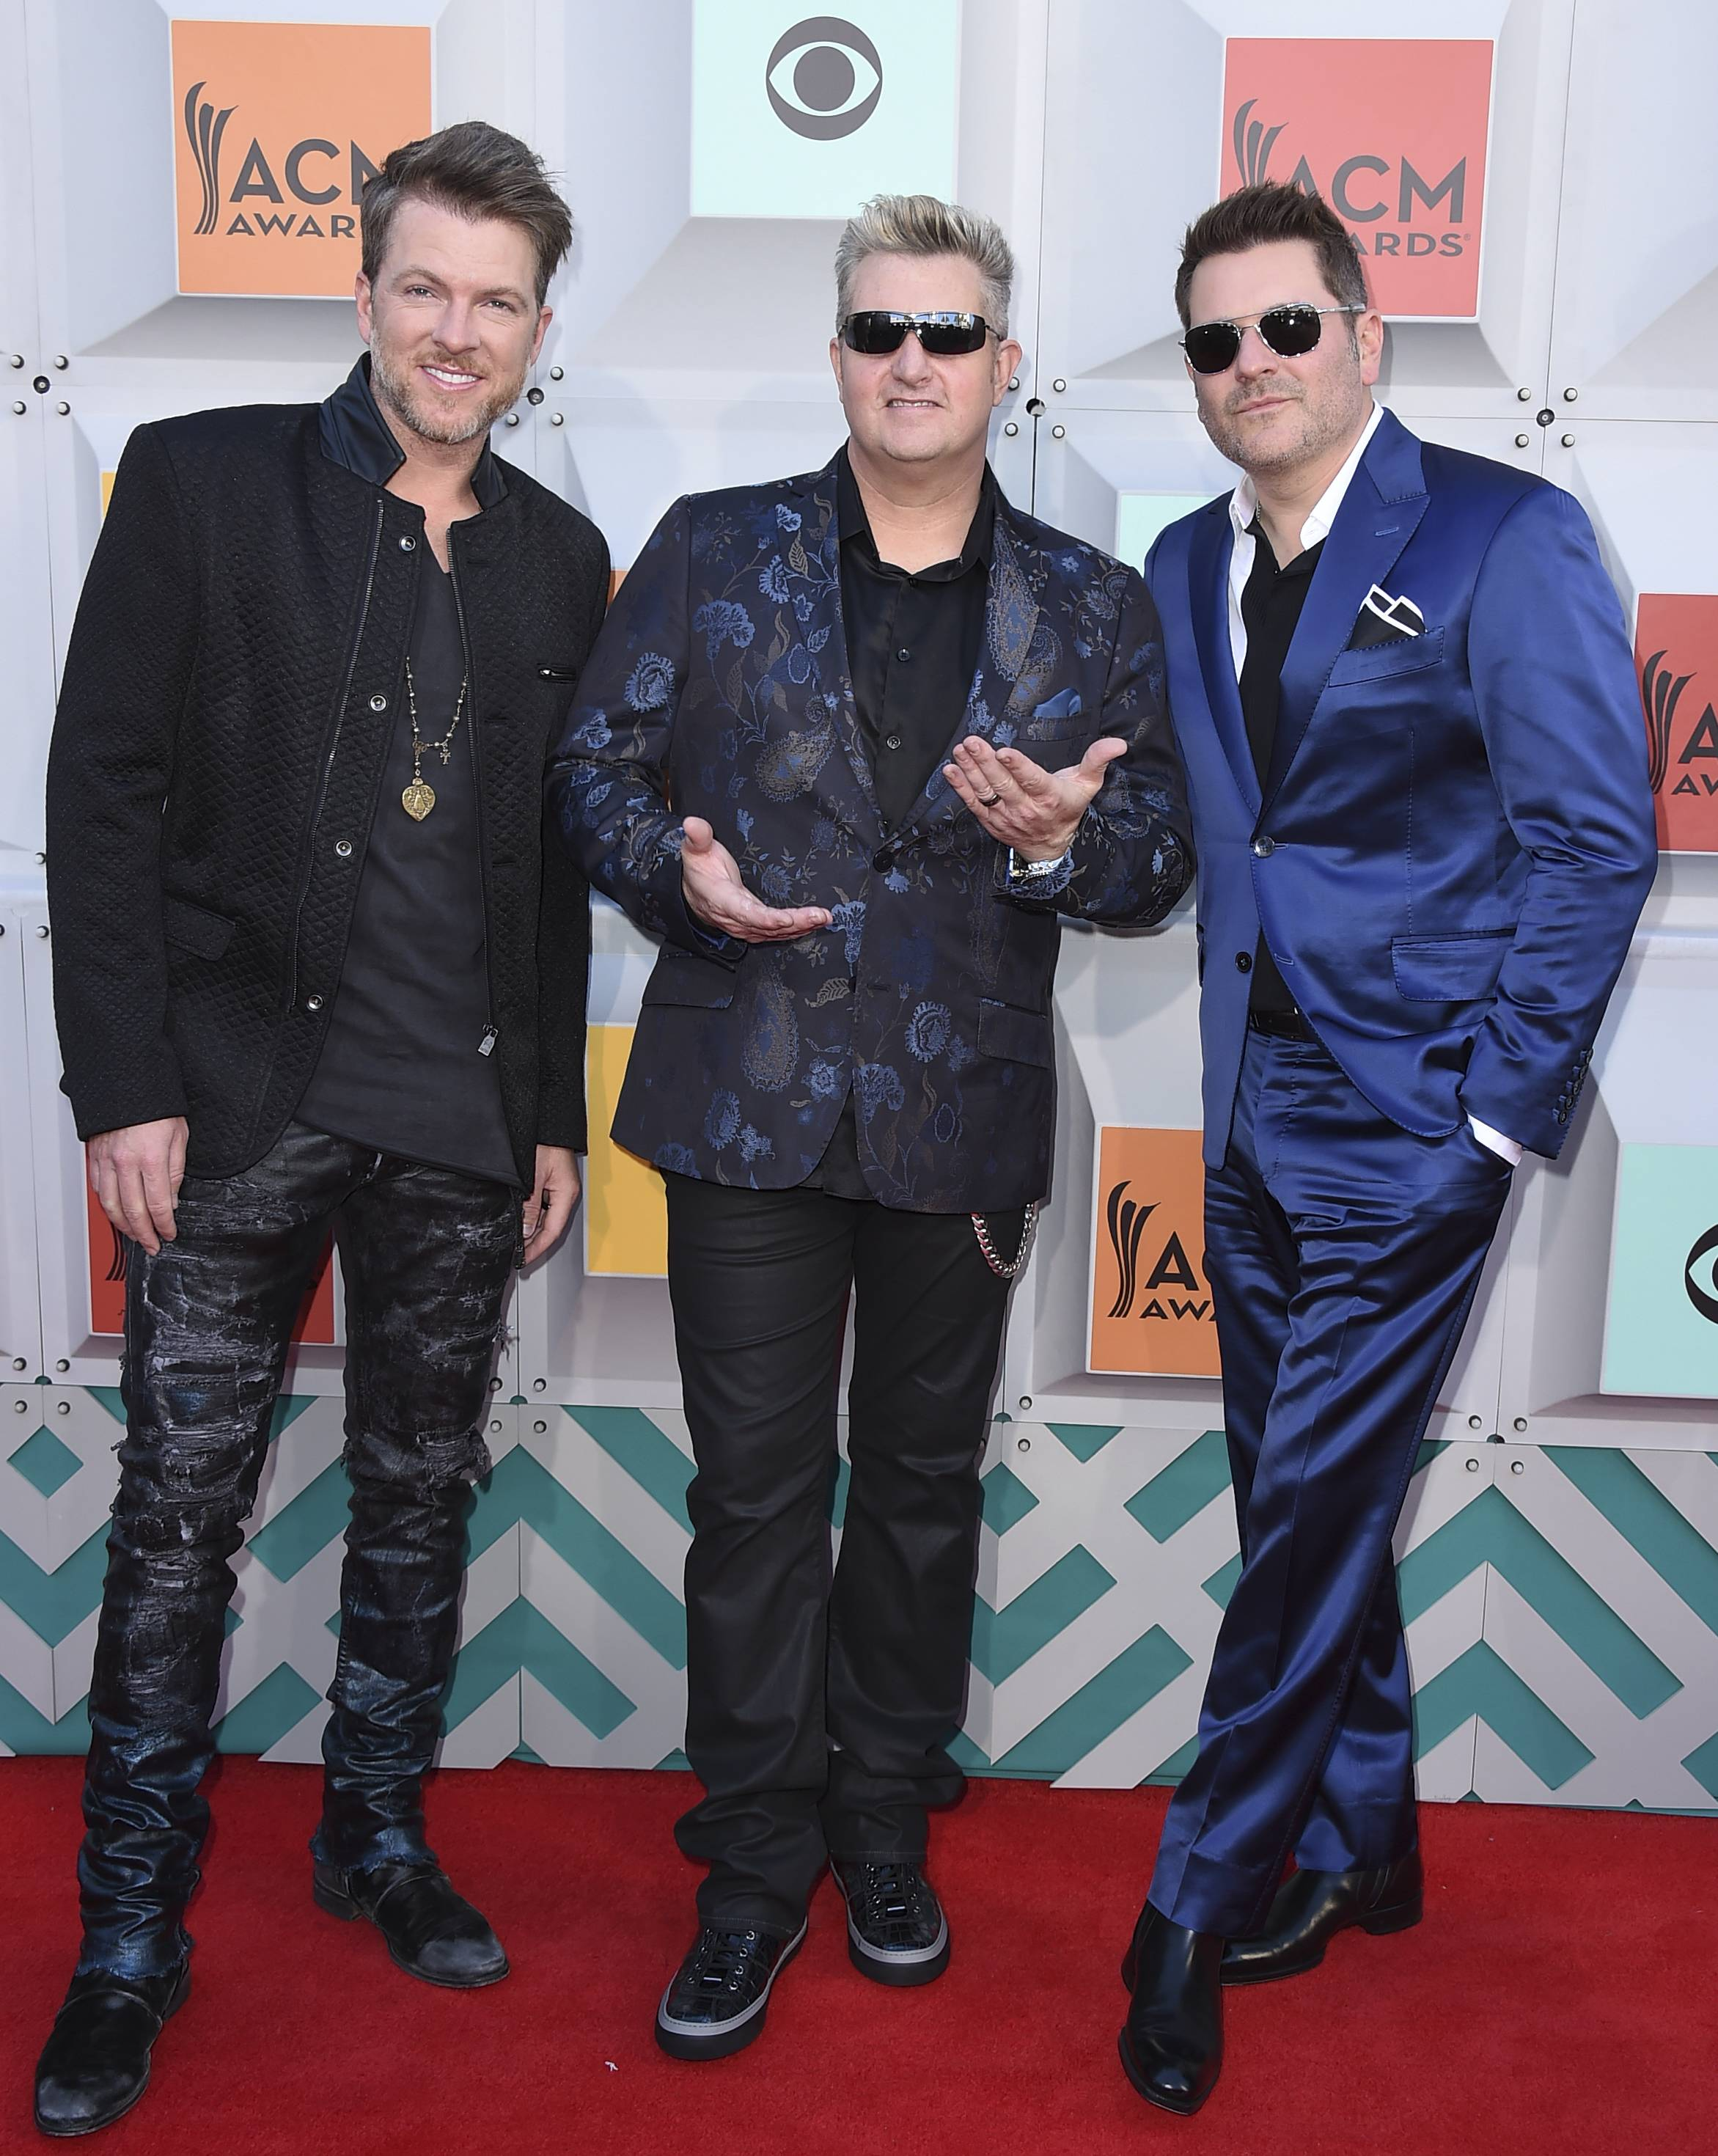 Joe Don Rooney, from left, Gary LeVox, and Jay DeMarcus, of Rascal Flatts, arrive at the 51st annual Academy of Country Music Awards in Las Vegas in 2016.